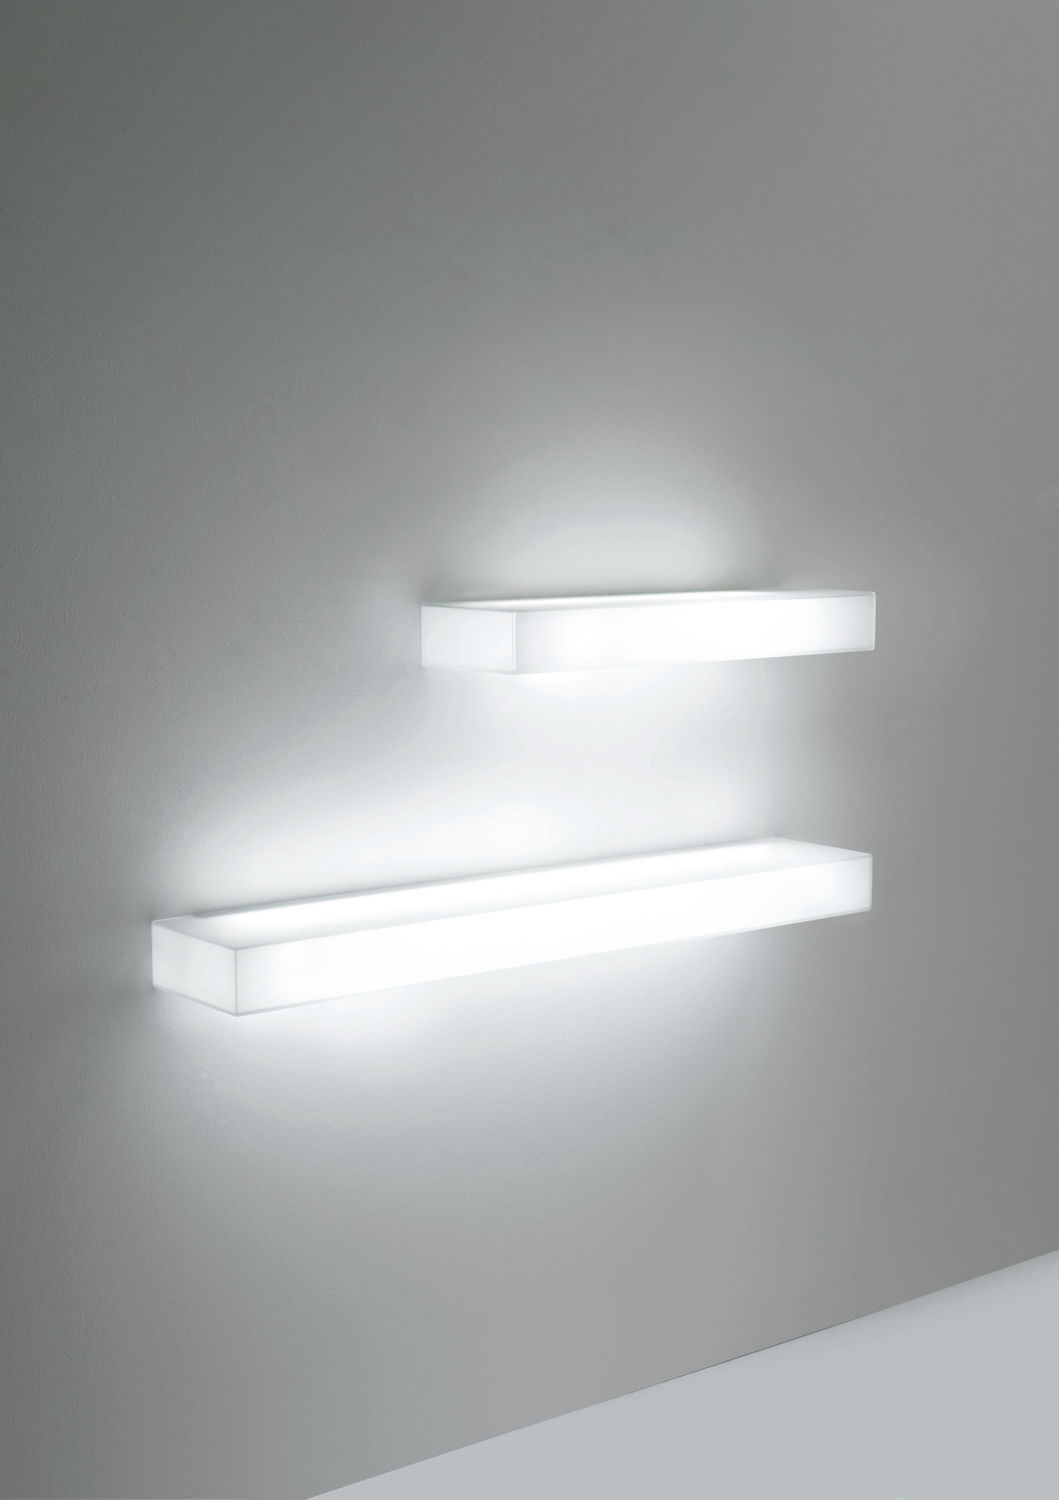 Wall Mounted Shelf Contemporary Glass Illuminated Light With Illuminated Glass Shelves (Image 14 of 15)